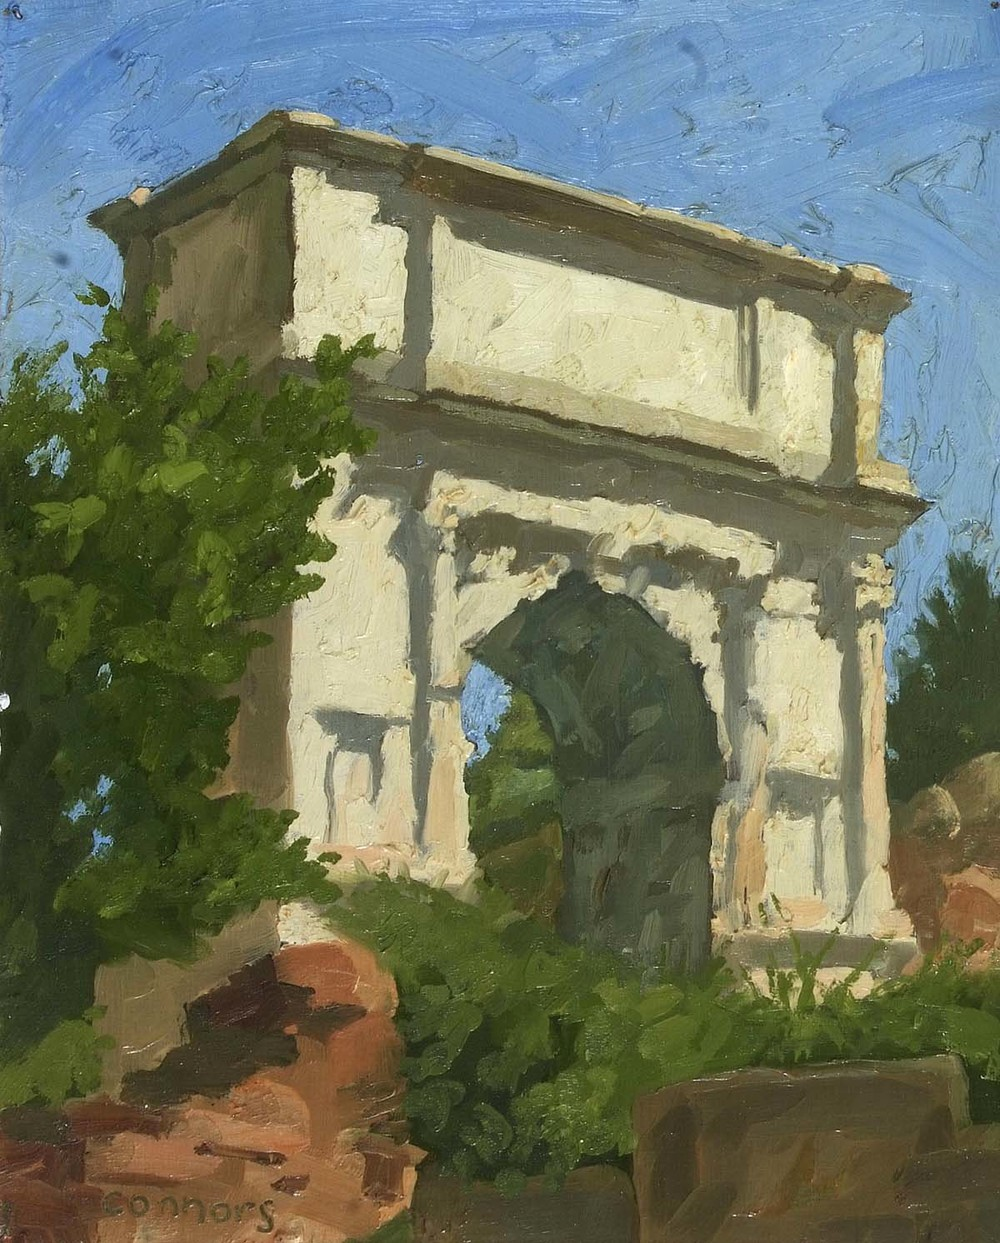 Arch of Titus, North View, 12 x 9.5 inches, oil on paper